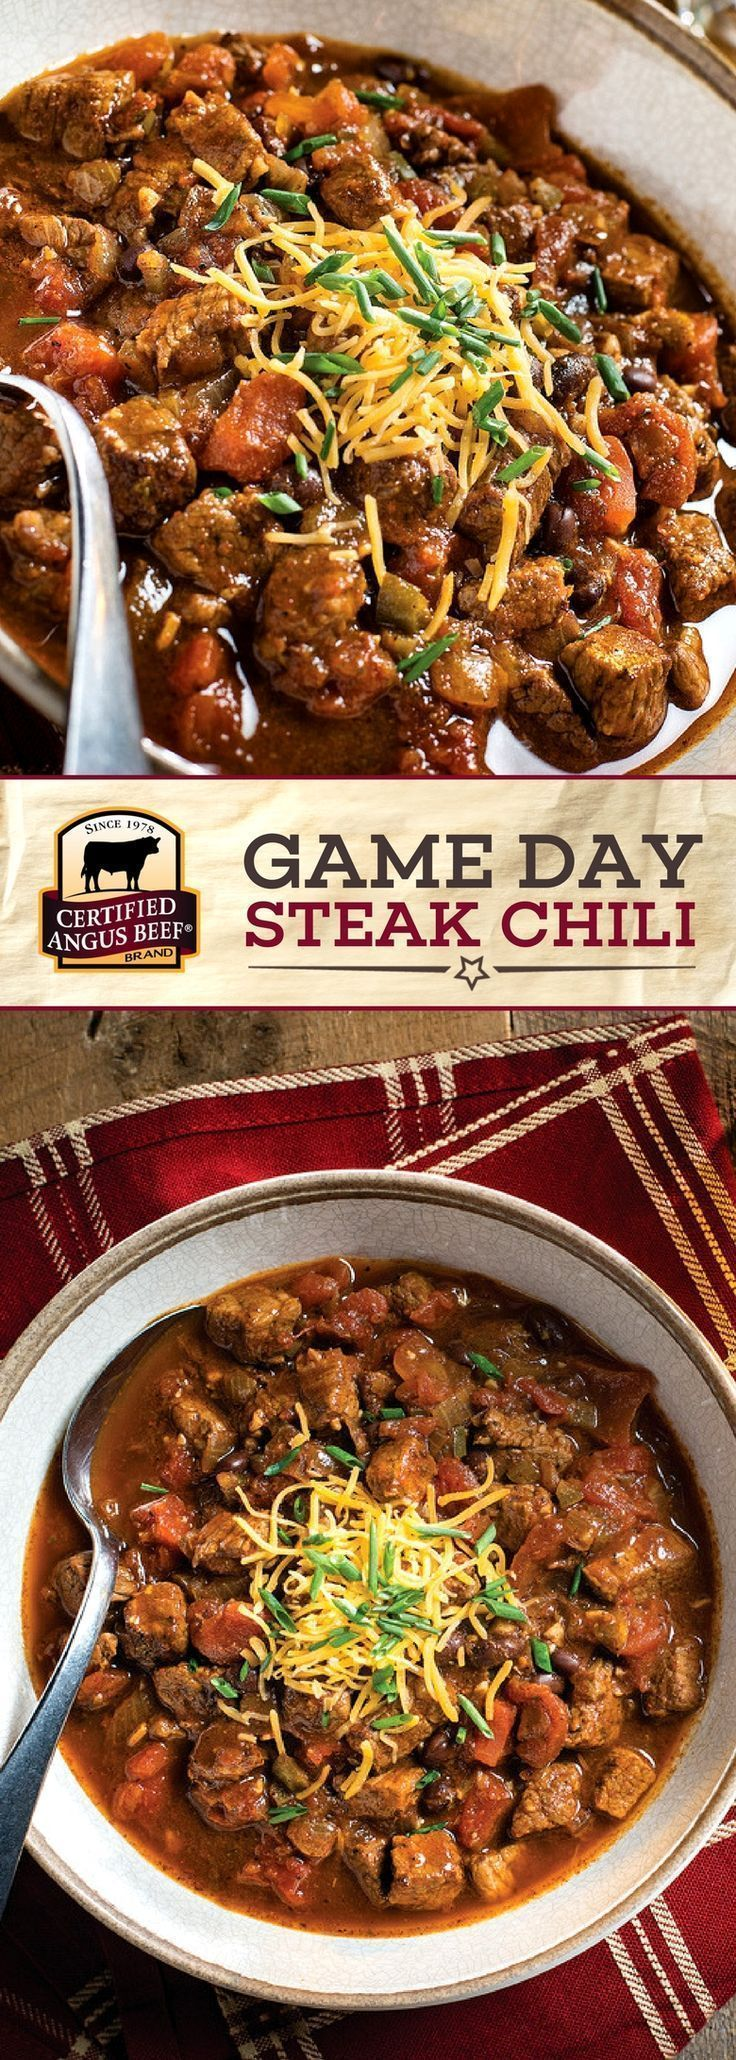 Certified Angus Beef Brand Game Day Steak Chili Is An Easy Chili Recipe That Uses The Best Botto Slow Cooker Chili Steak Chili Recipe Steak Chili